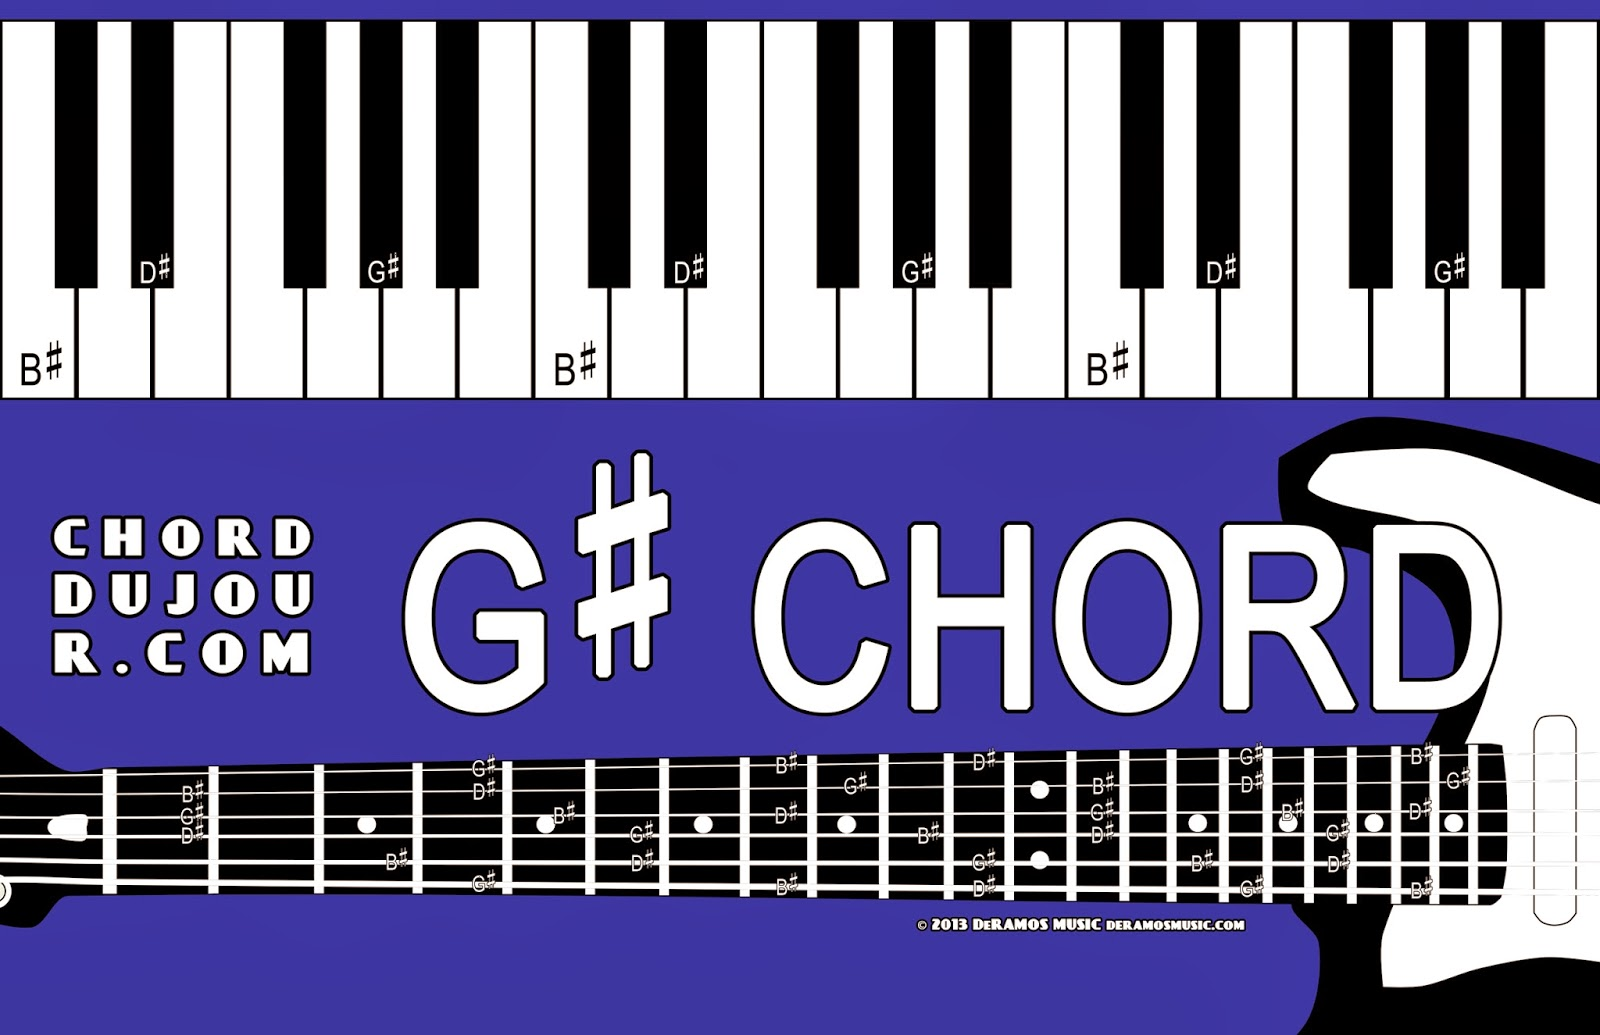 Chord du jour dictionary g chord if youre looking for a simpler g sharp major chord for the guitar check out this entry from august 2007 hexwebz Gallery